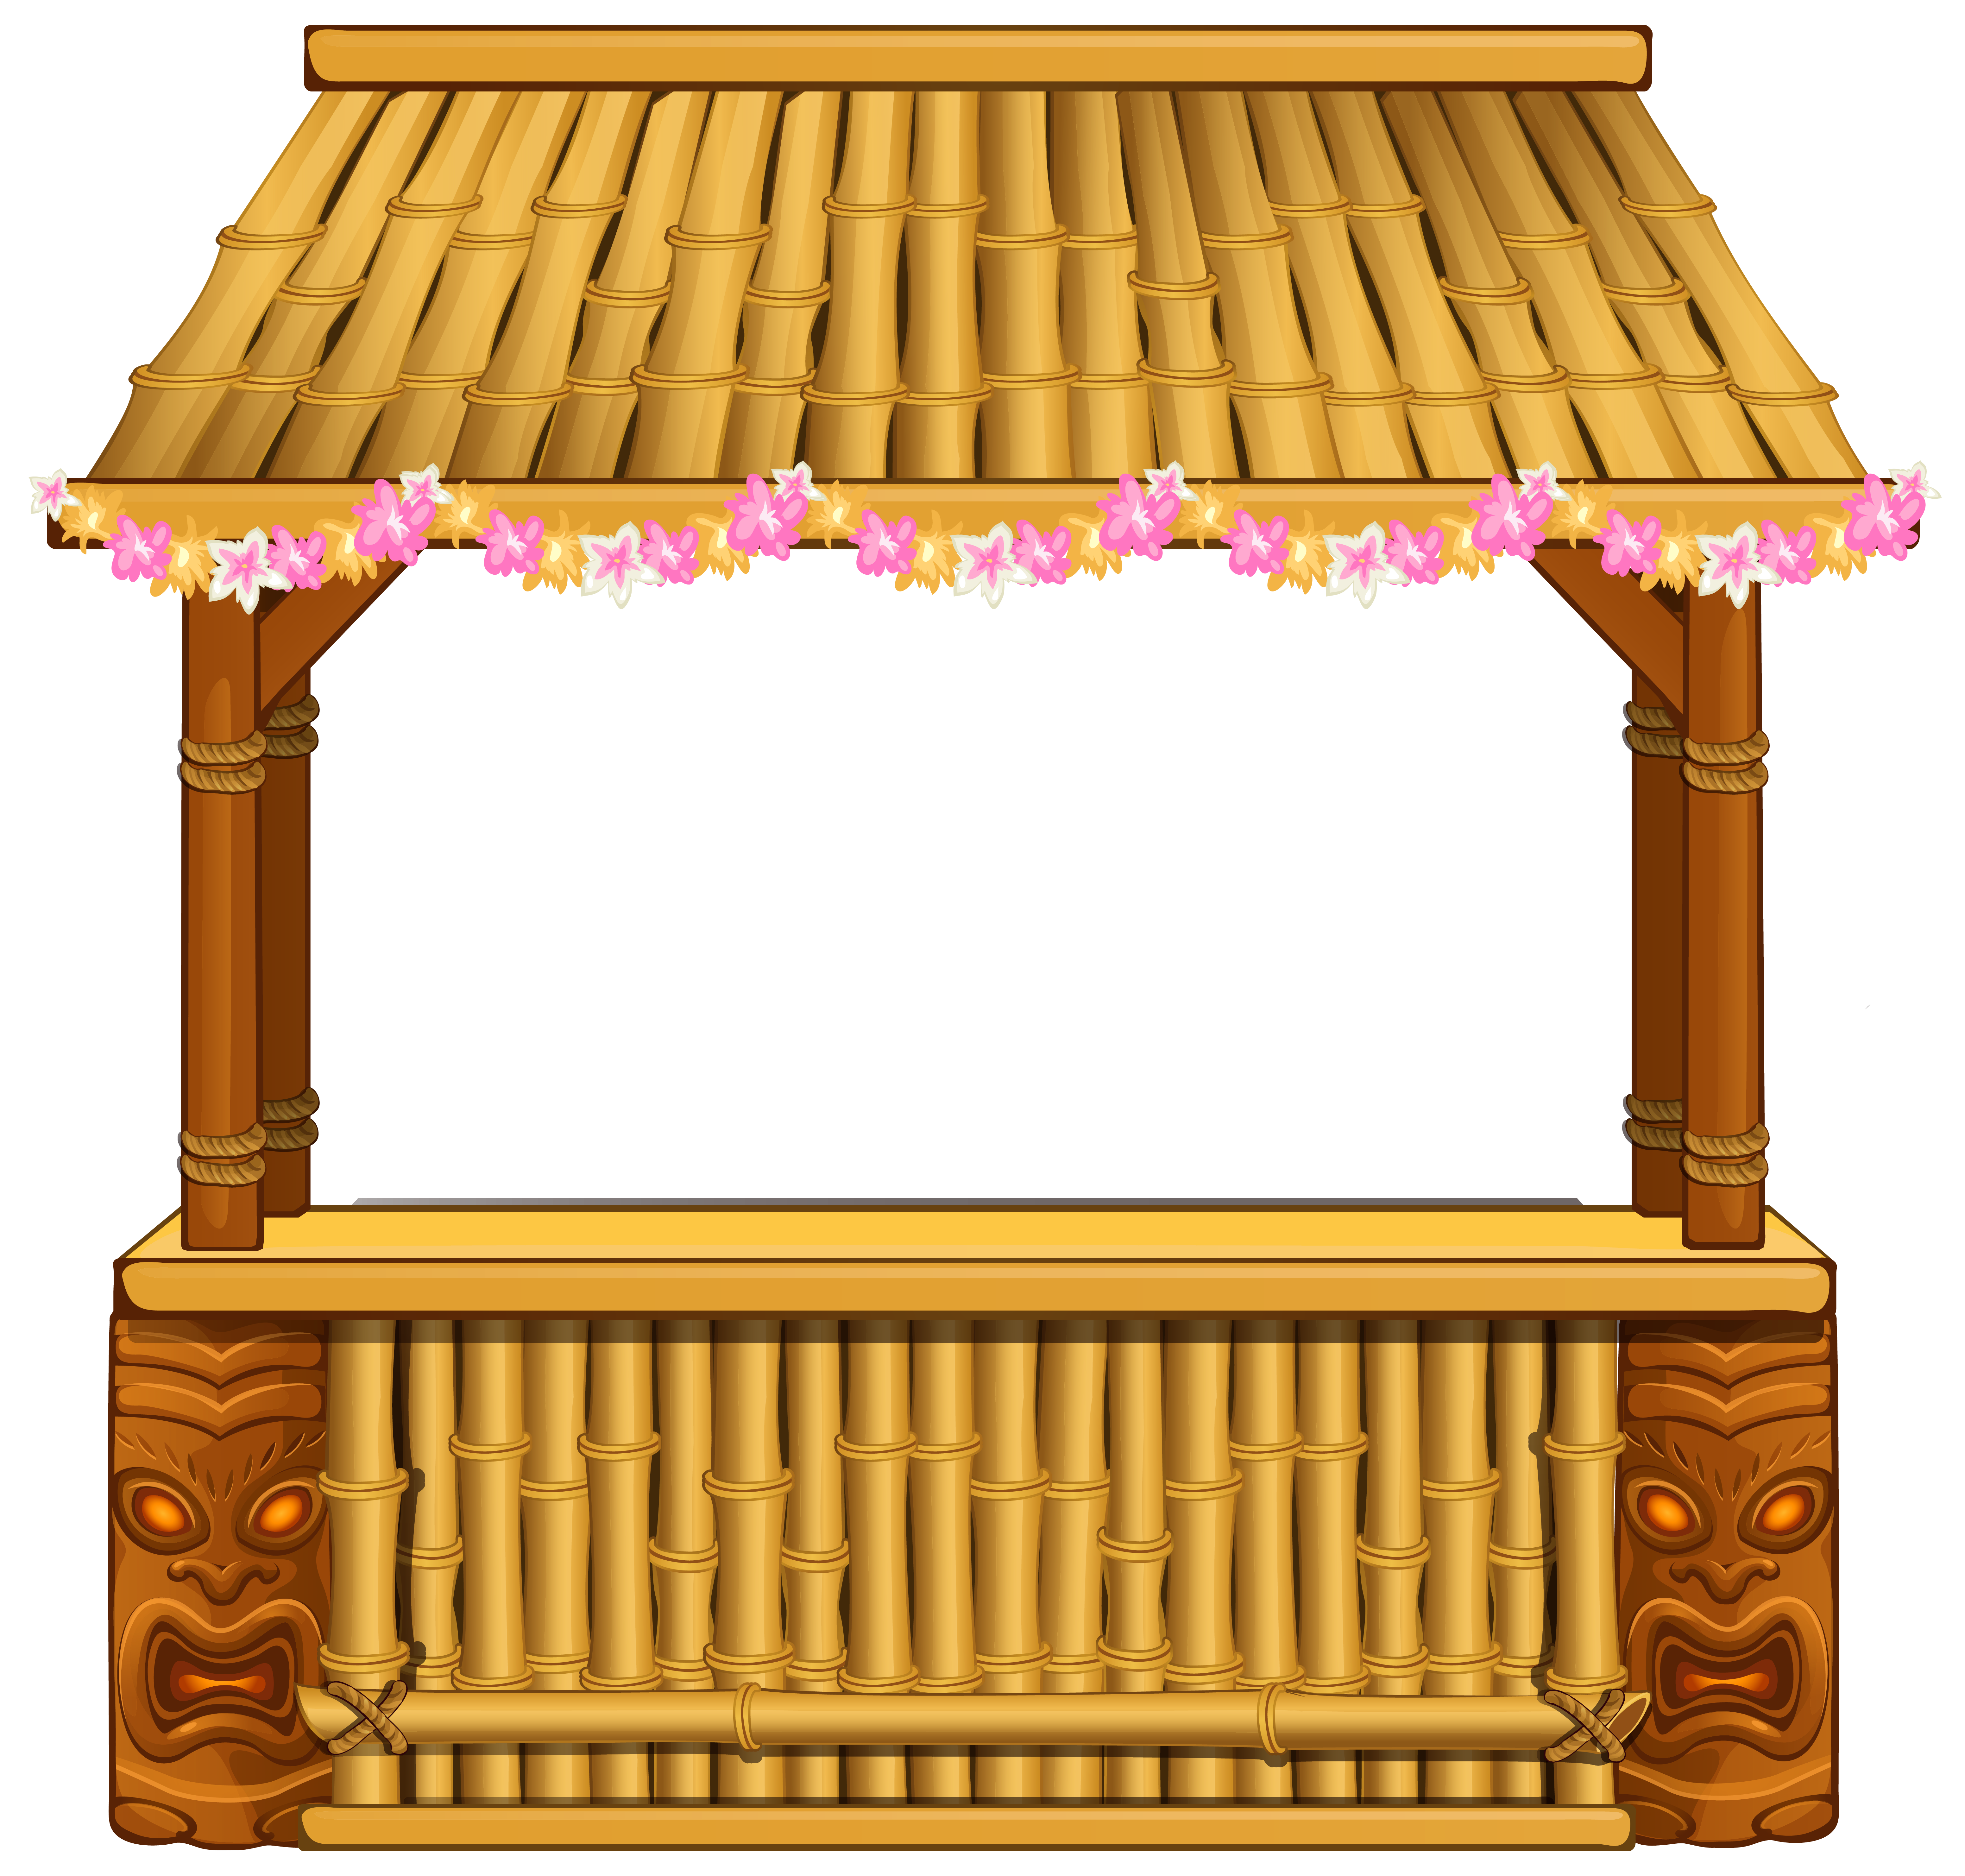 Bar background png. Tiki clipart image gallery